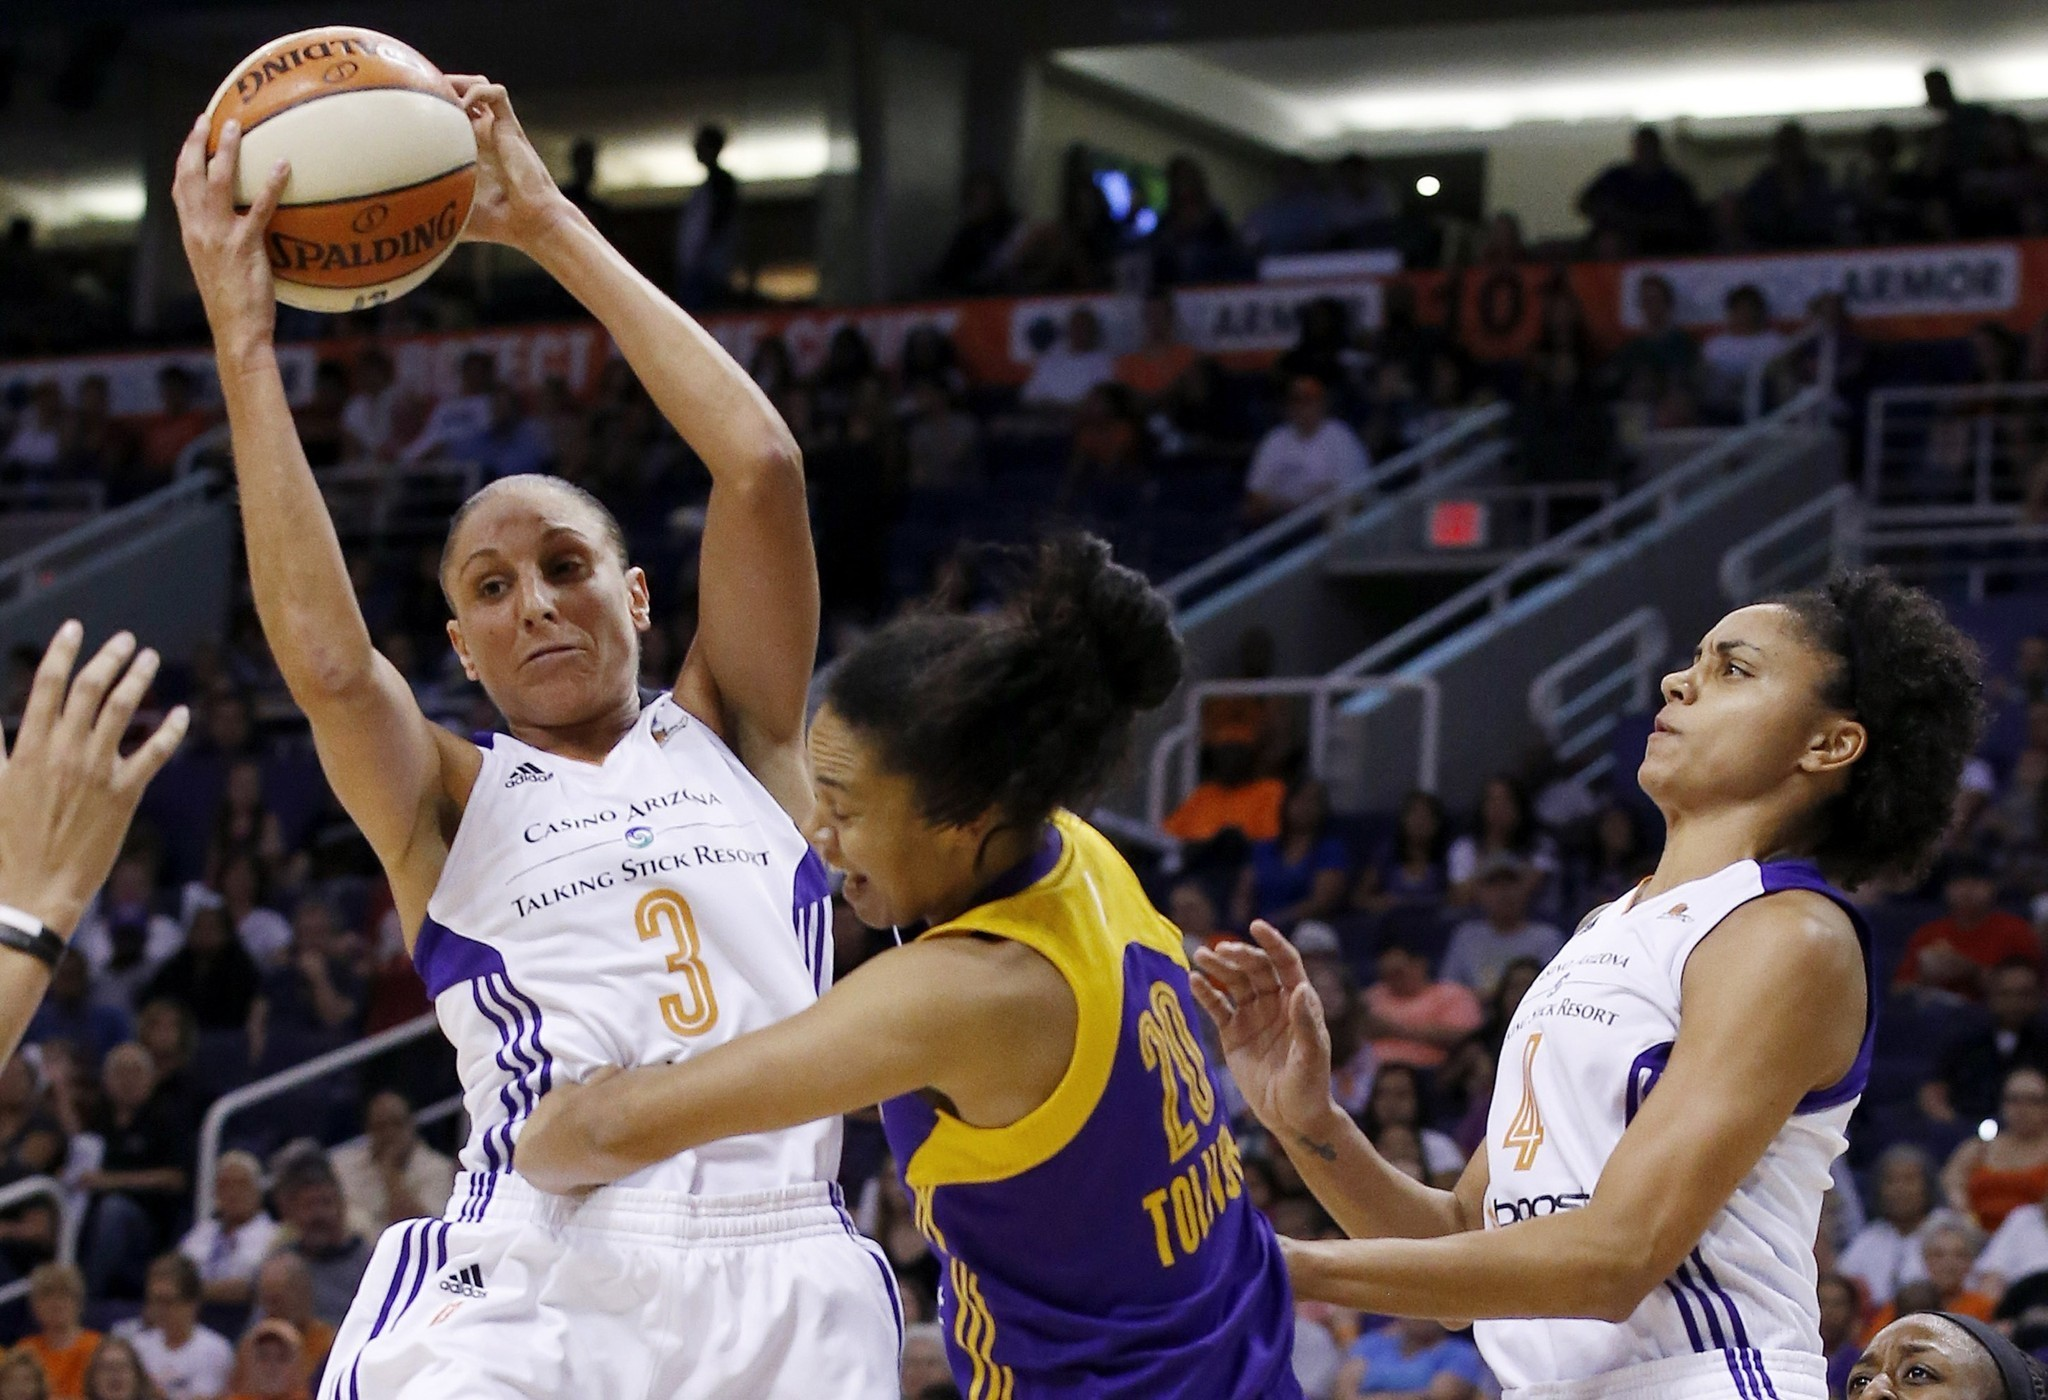 Diana Taurasi leads Mercury past Sparks, 75-72, in playoff opener